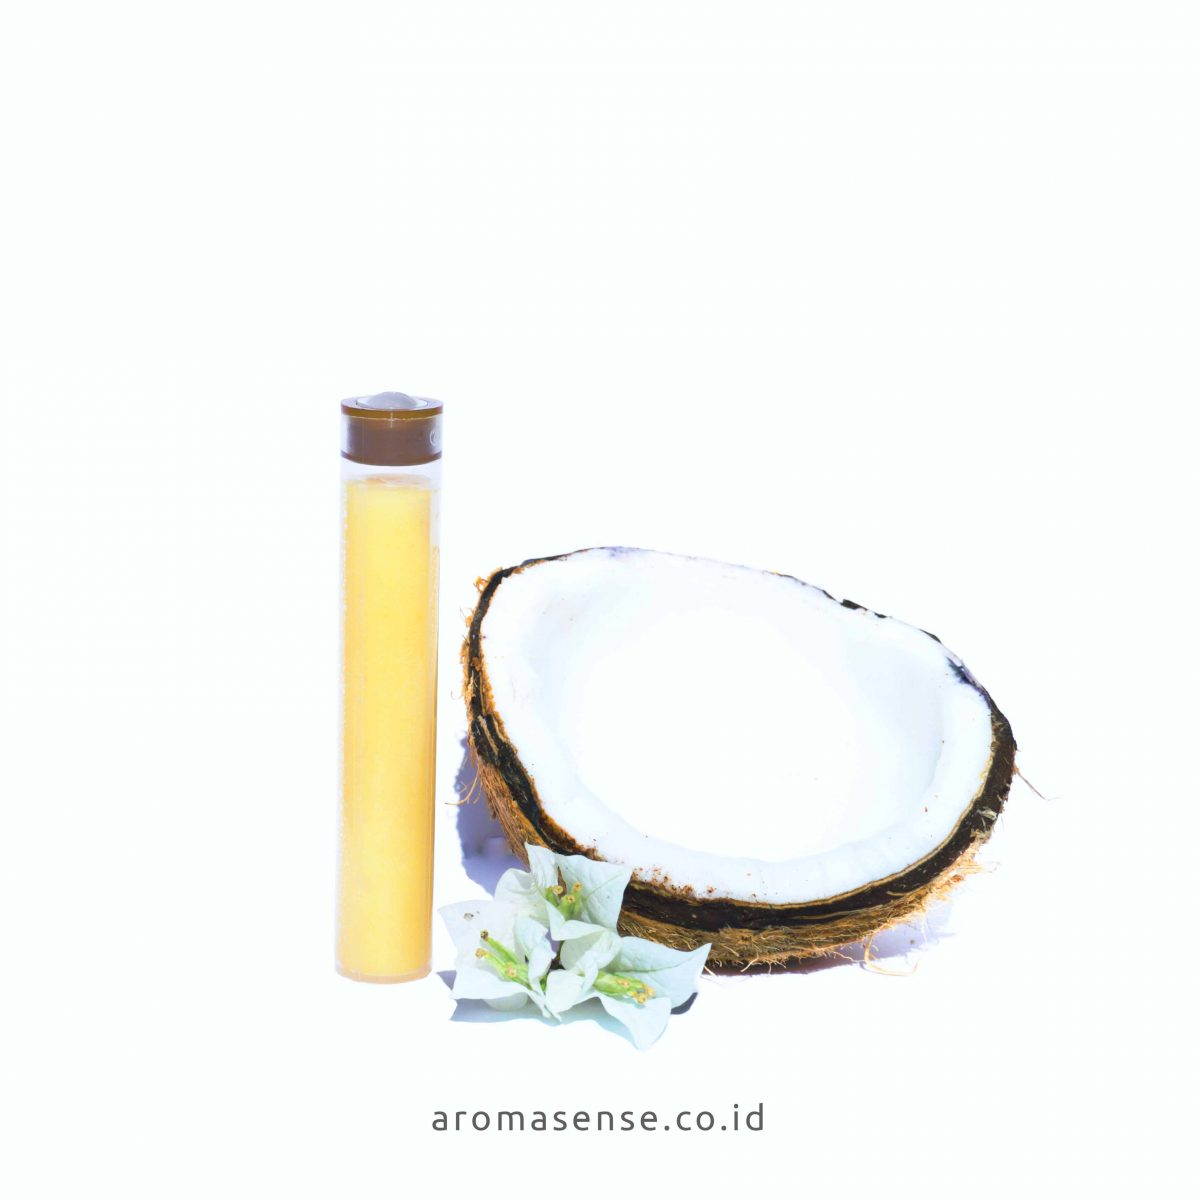 vanillacoconut-cartridge-aromasense